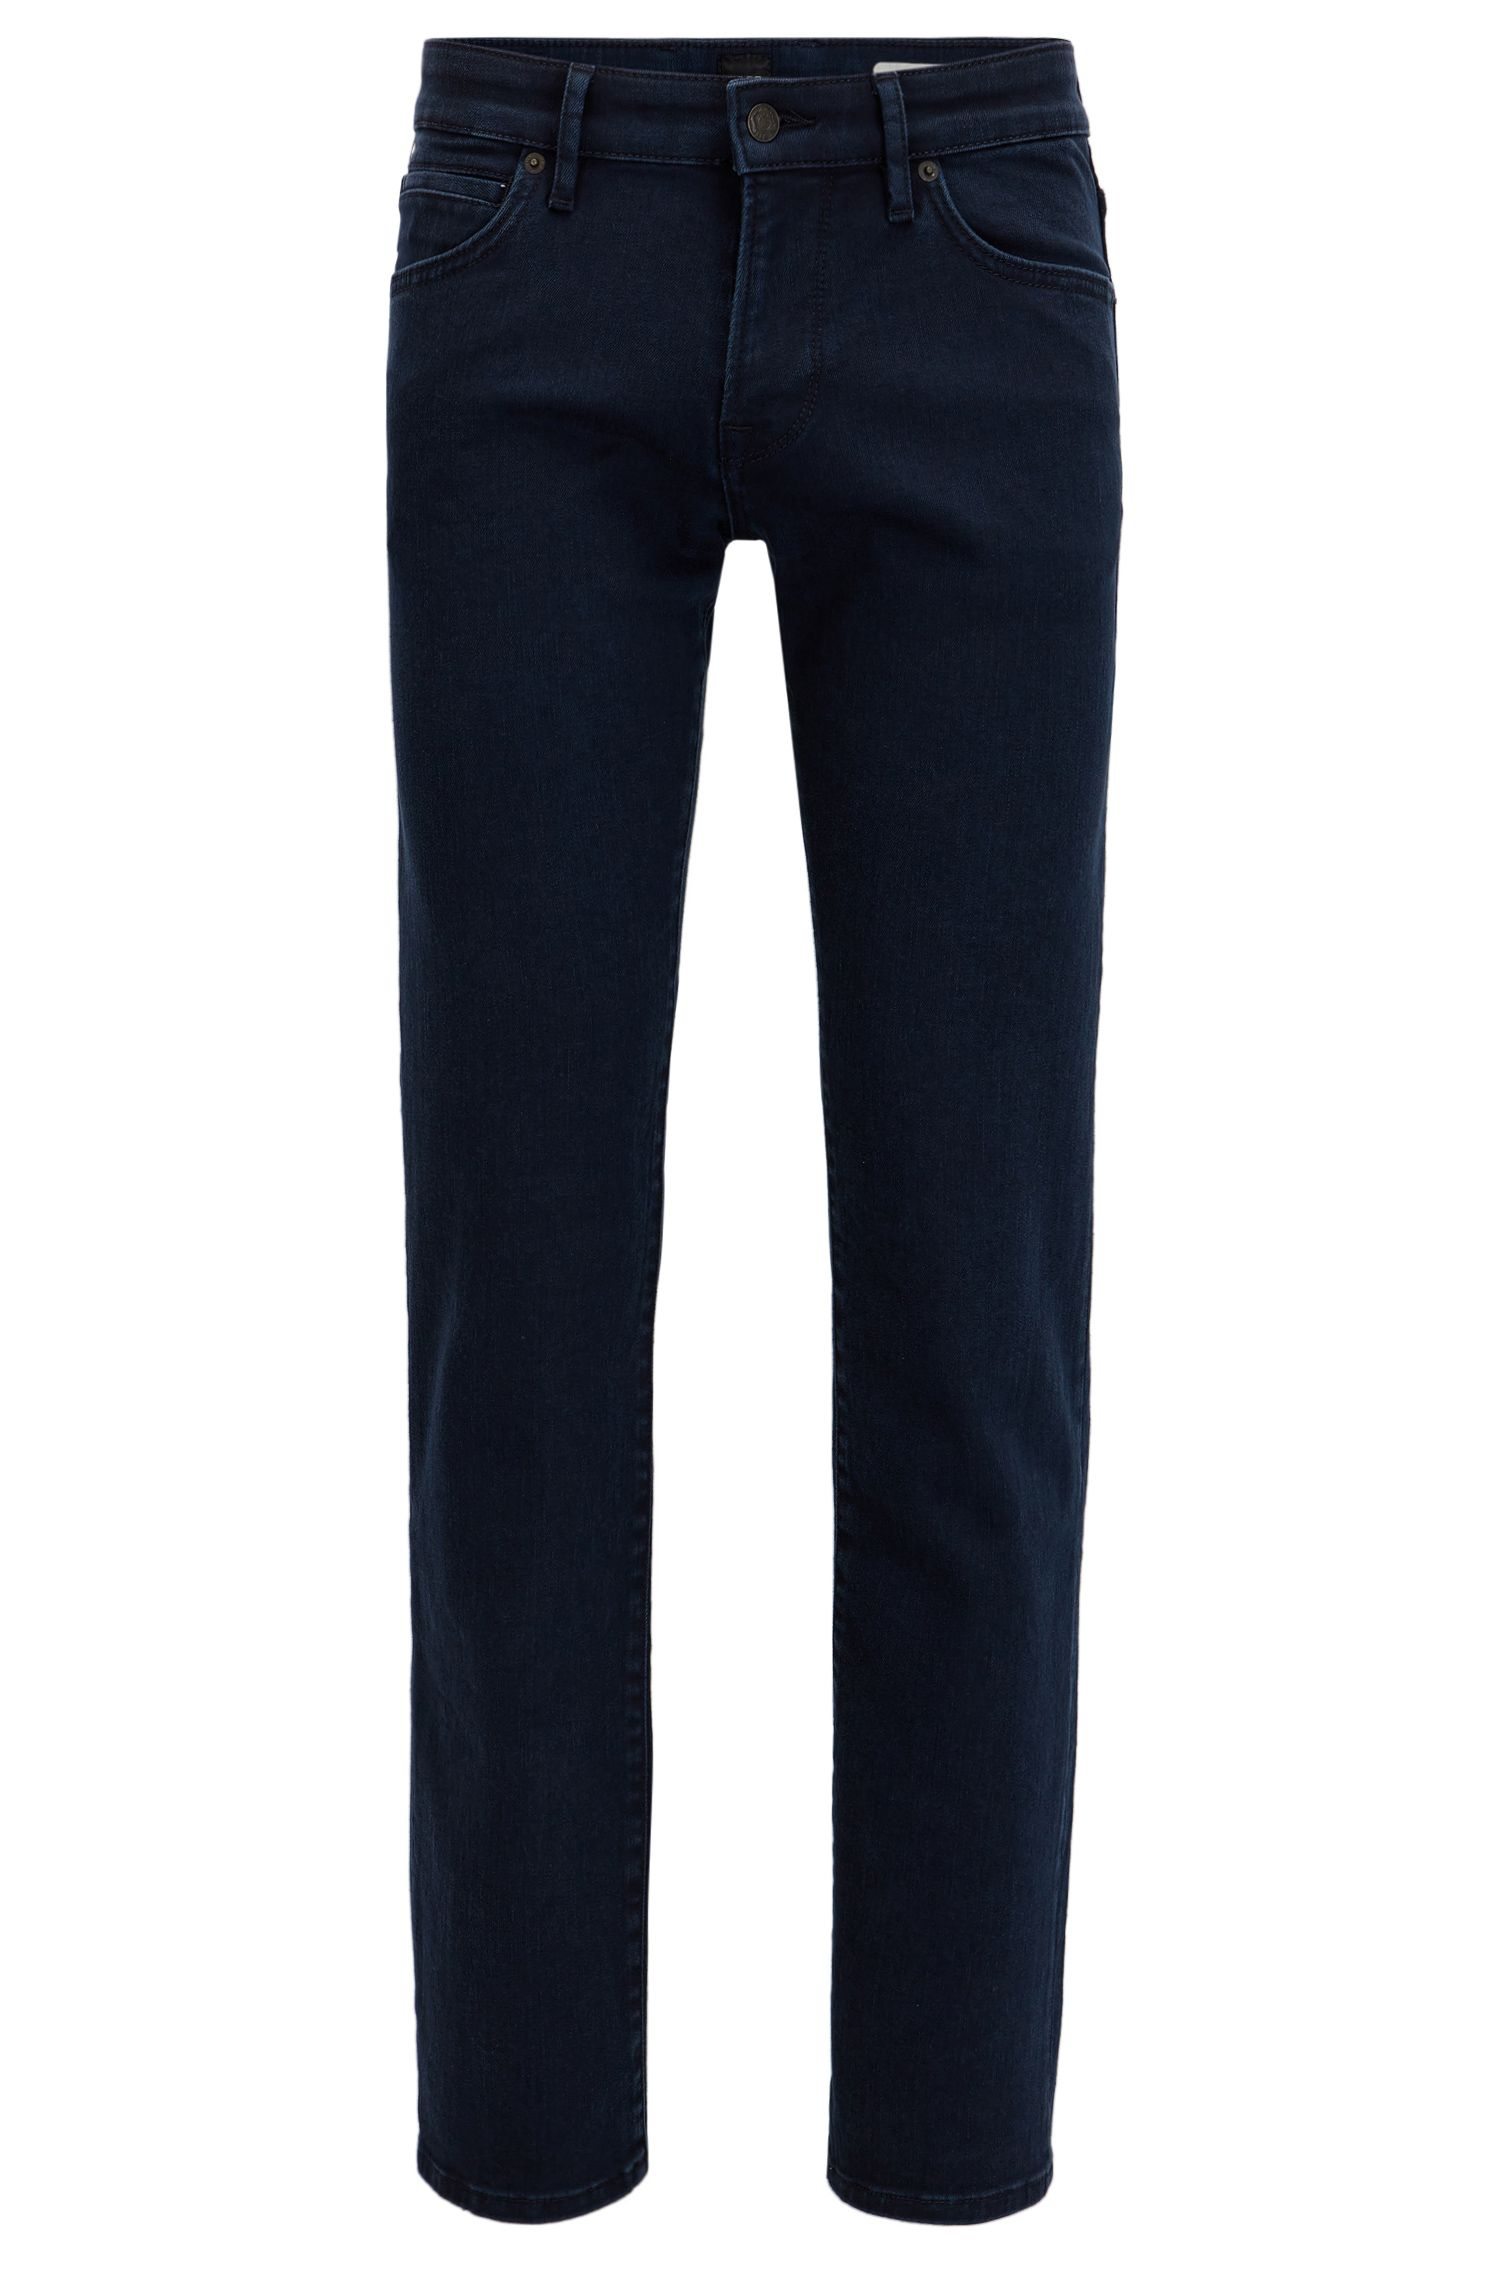 Jeans regular fit blu in comodo denim elasticizzato